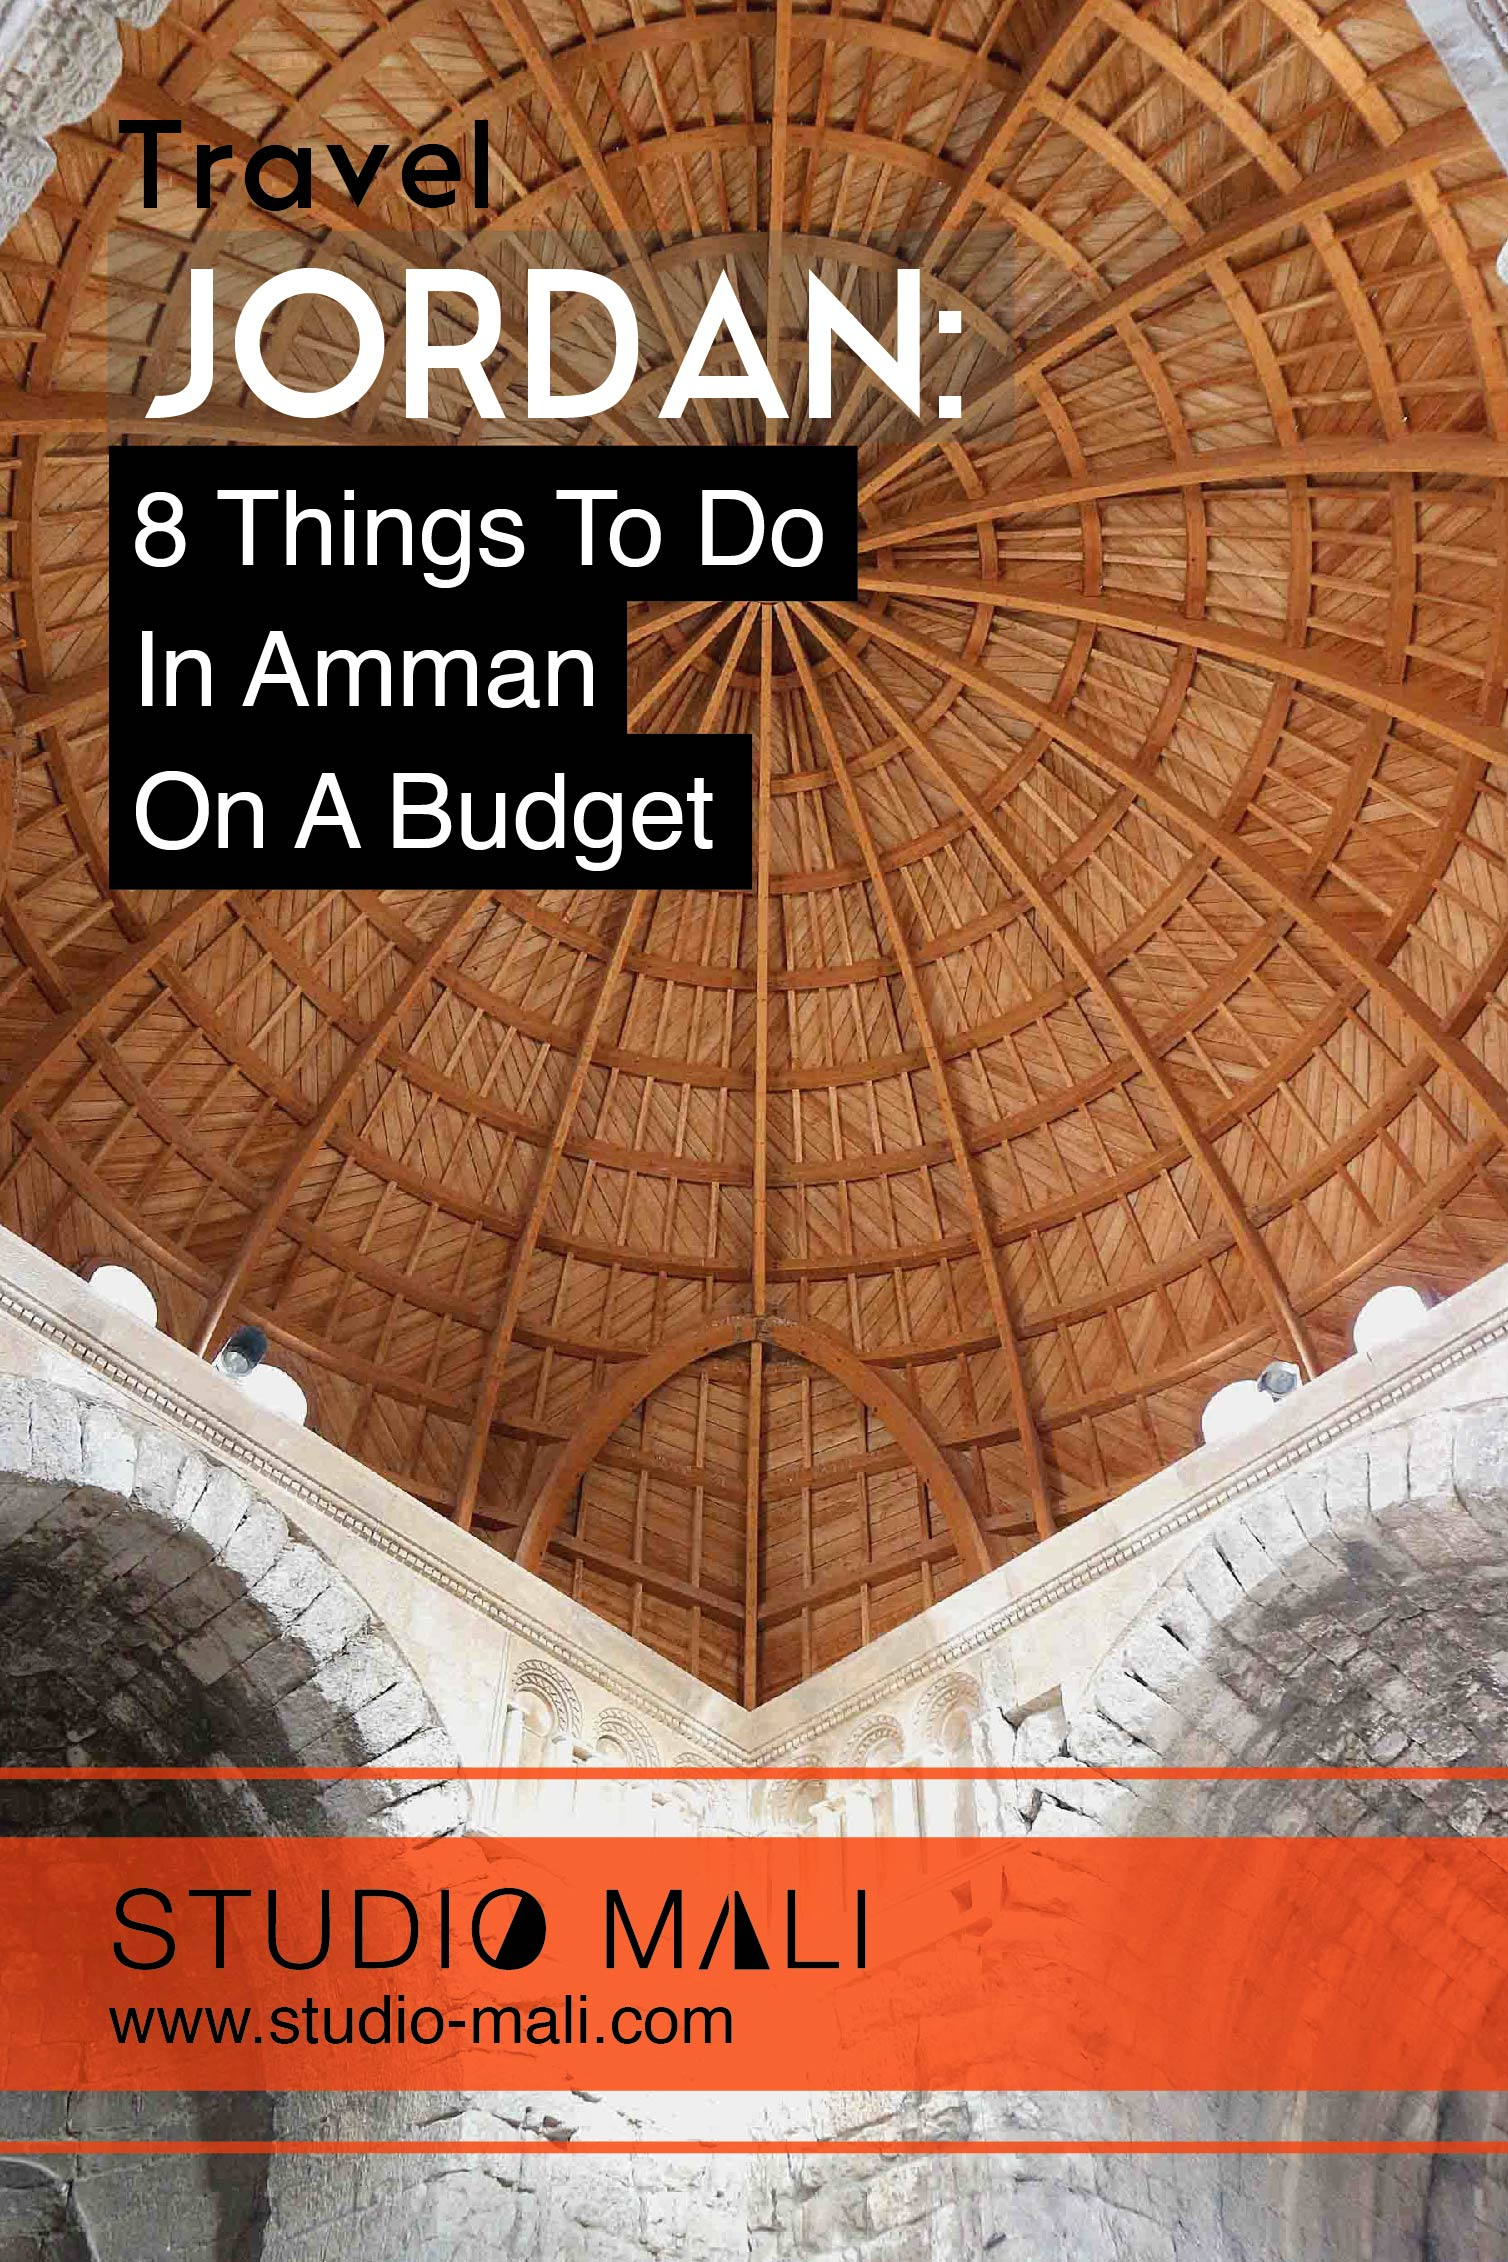 Jordan - 8 Things To Do In Amman On A Budget, by Studio Mali.jpg